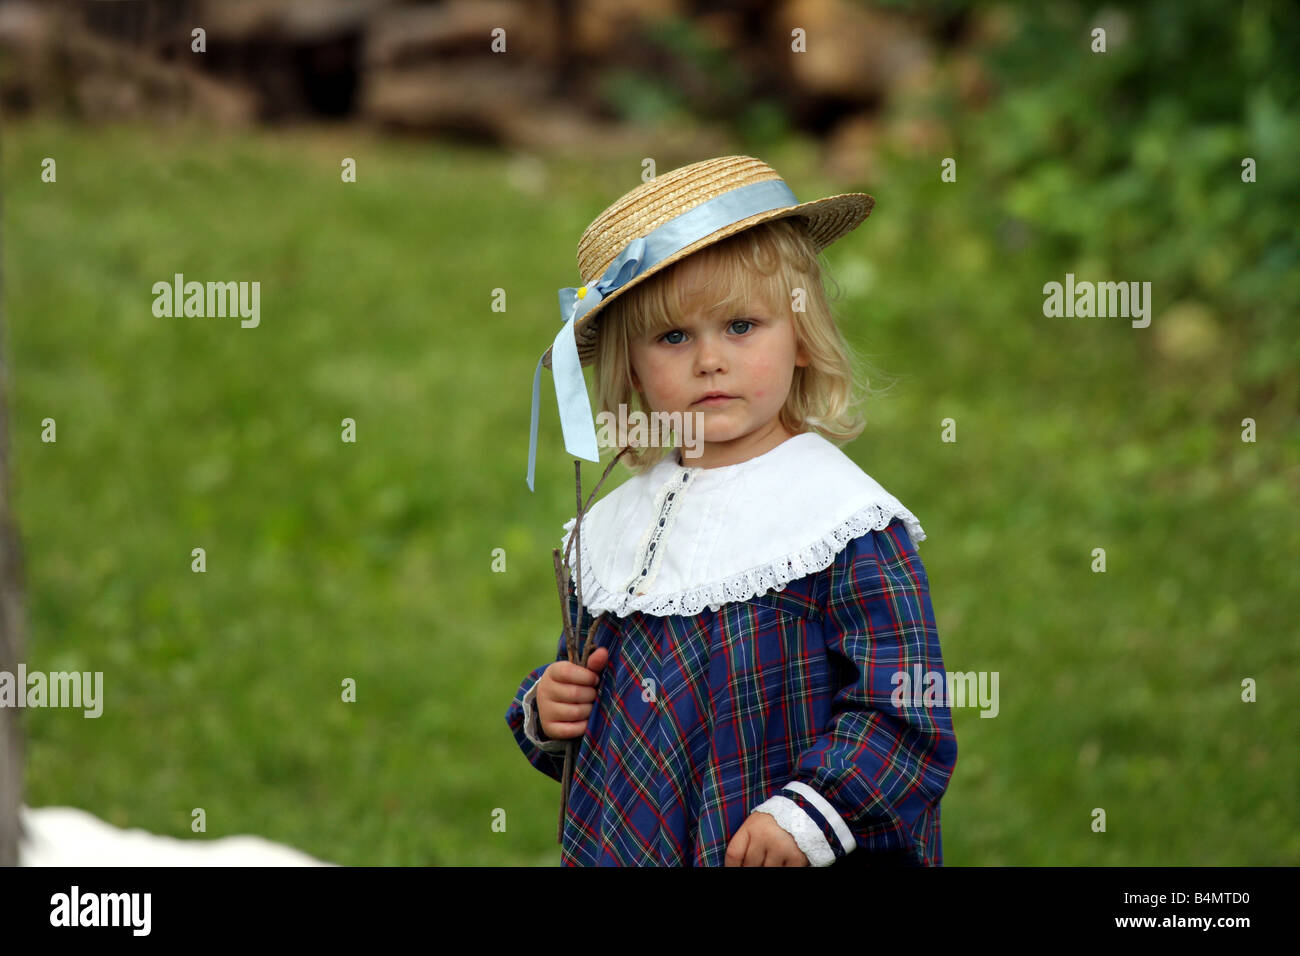 A little girl dressed up in civil war 1860 period clothling - Stock Image